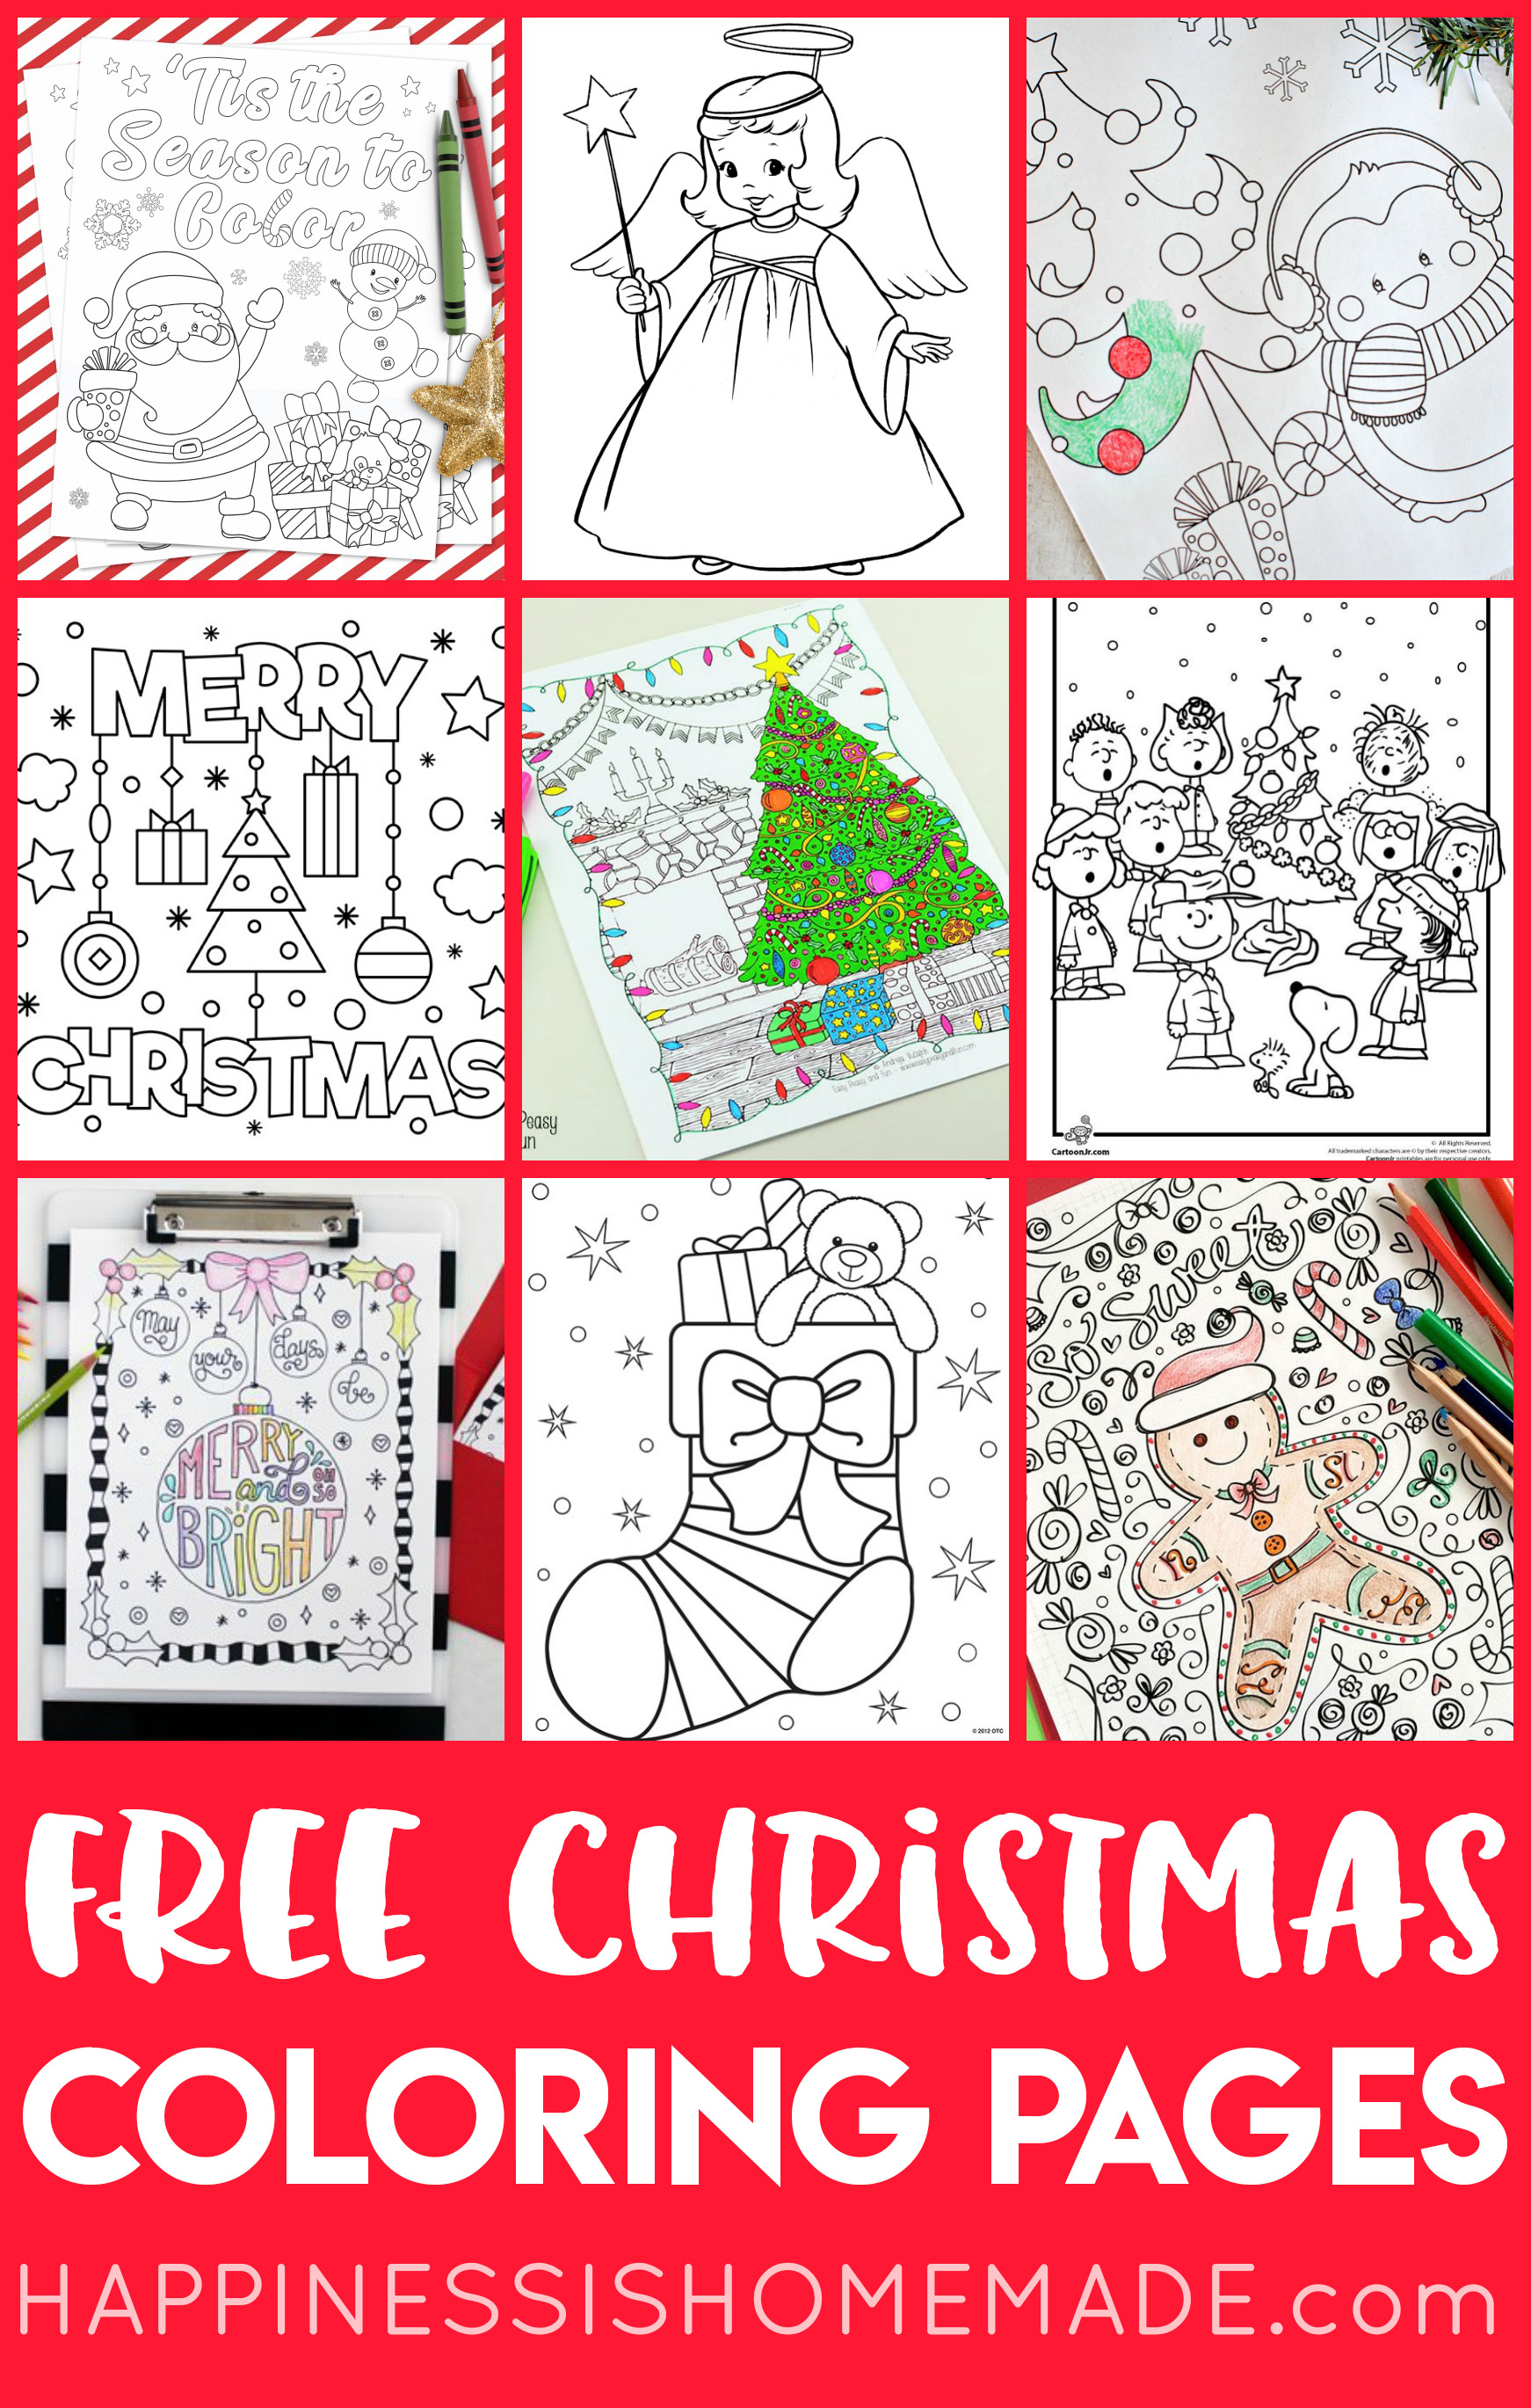 photo regarding Printable Christmas Images identified as Absolutely free Xmas Coloring Web pages for Grownups and Youngsters